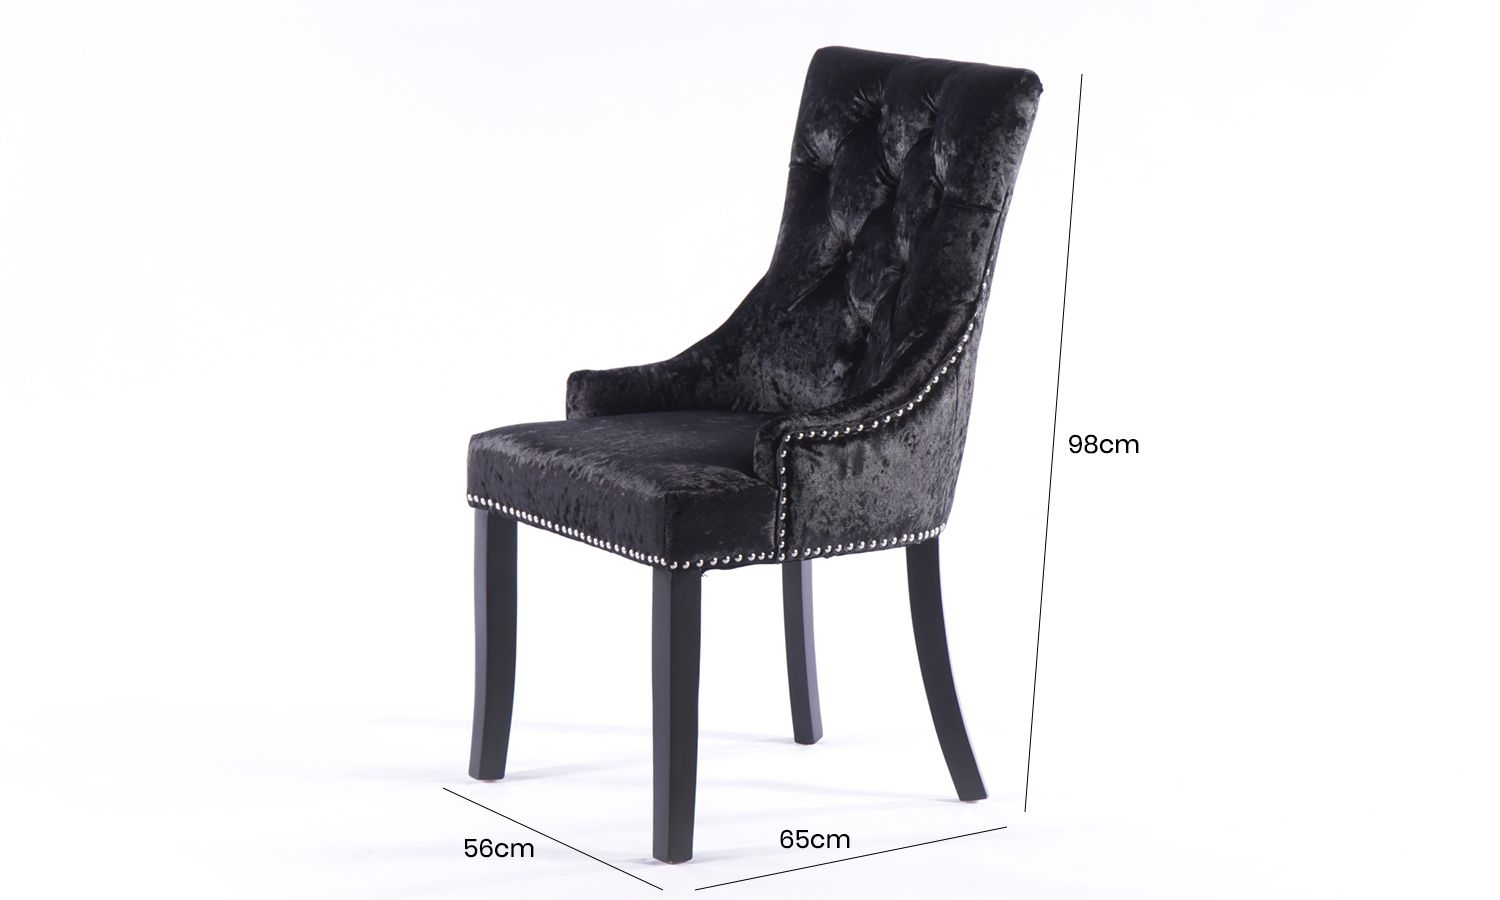 4 x Black Crushed Velvet Knockerback Dining Chair